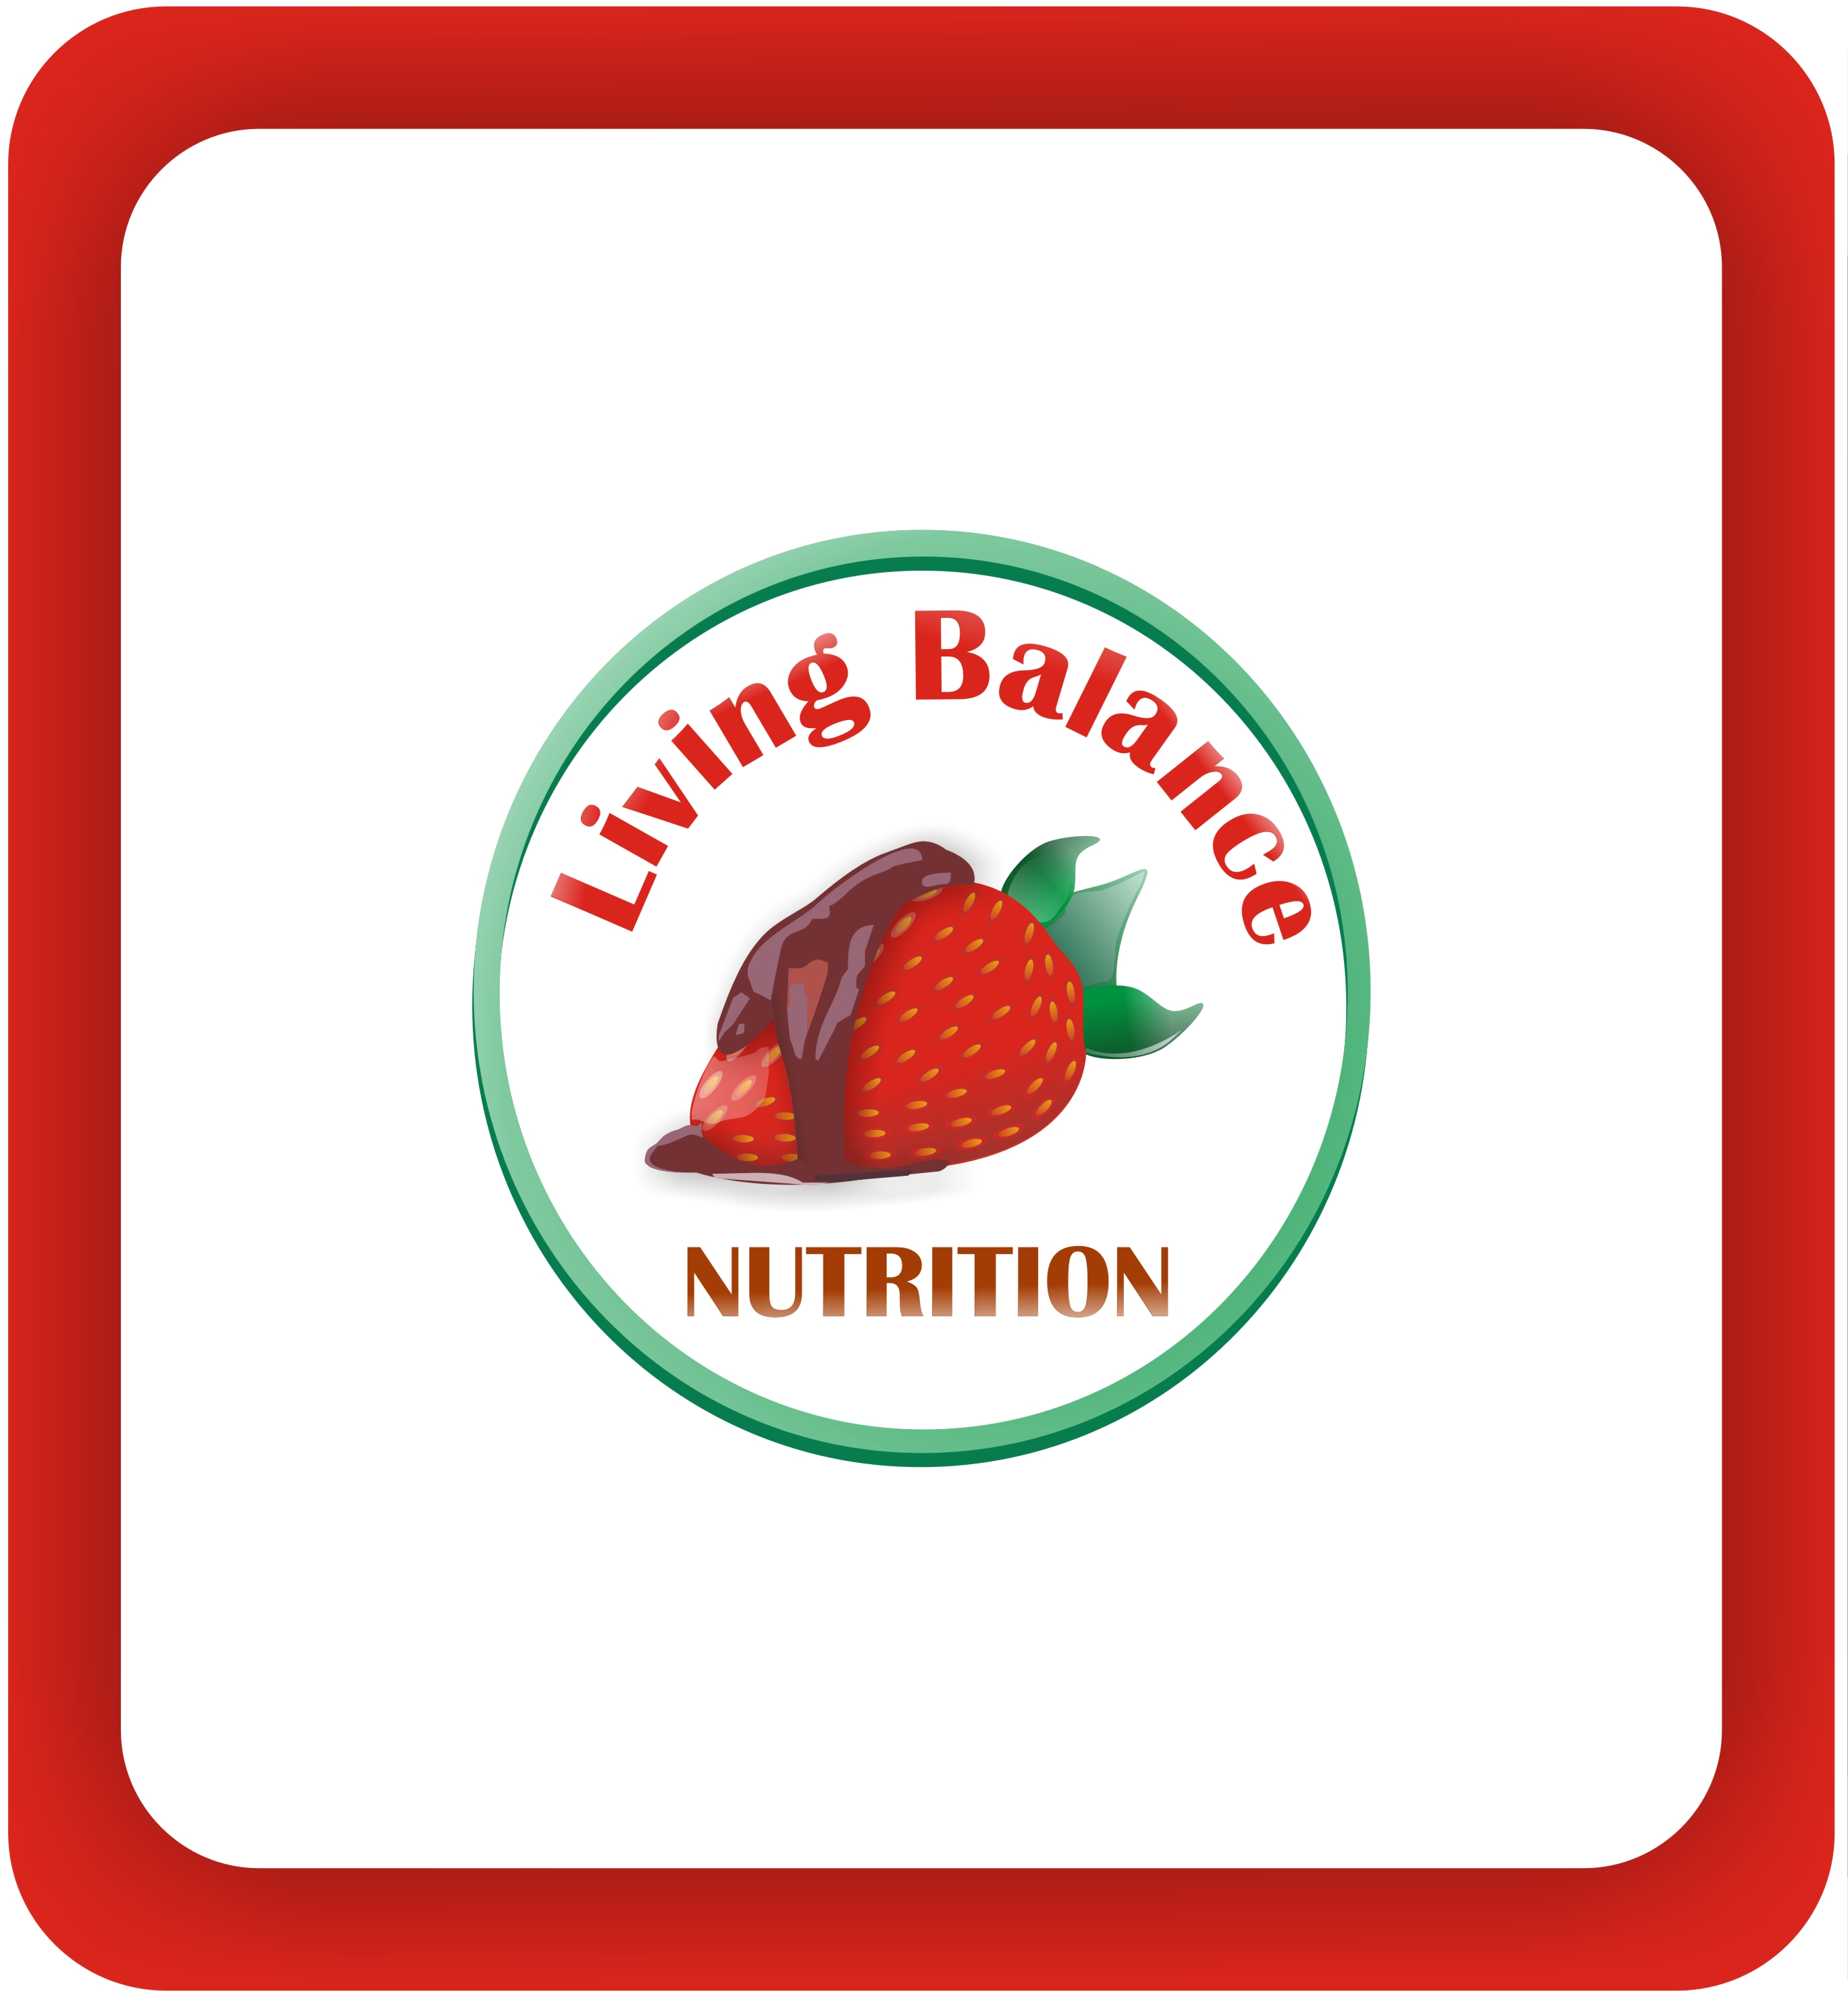 Logo Design by Shailender Kumar - Entry No. 9 in the Logo Design Contest Unique Logo Design Wanted for Living Balance Nutrition.